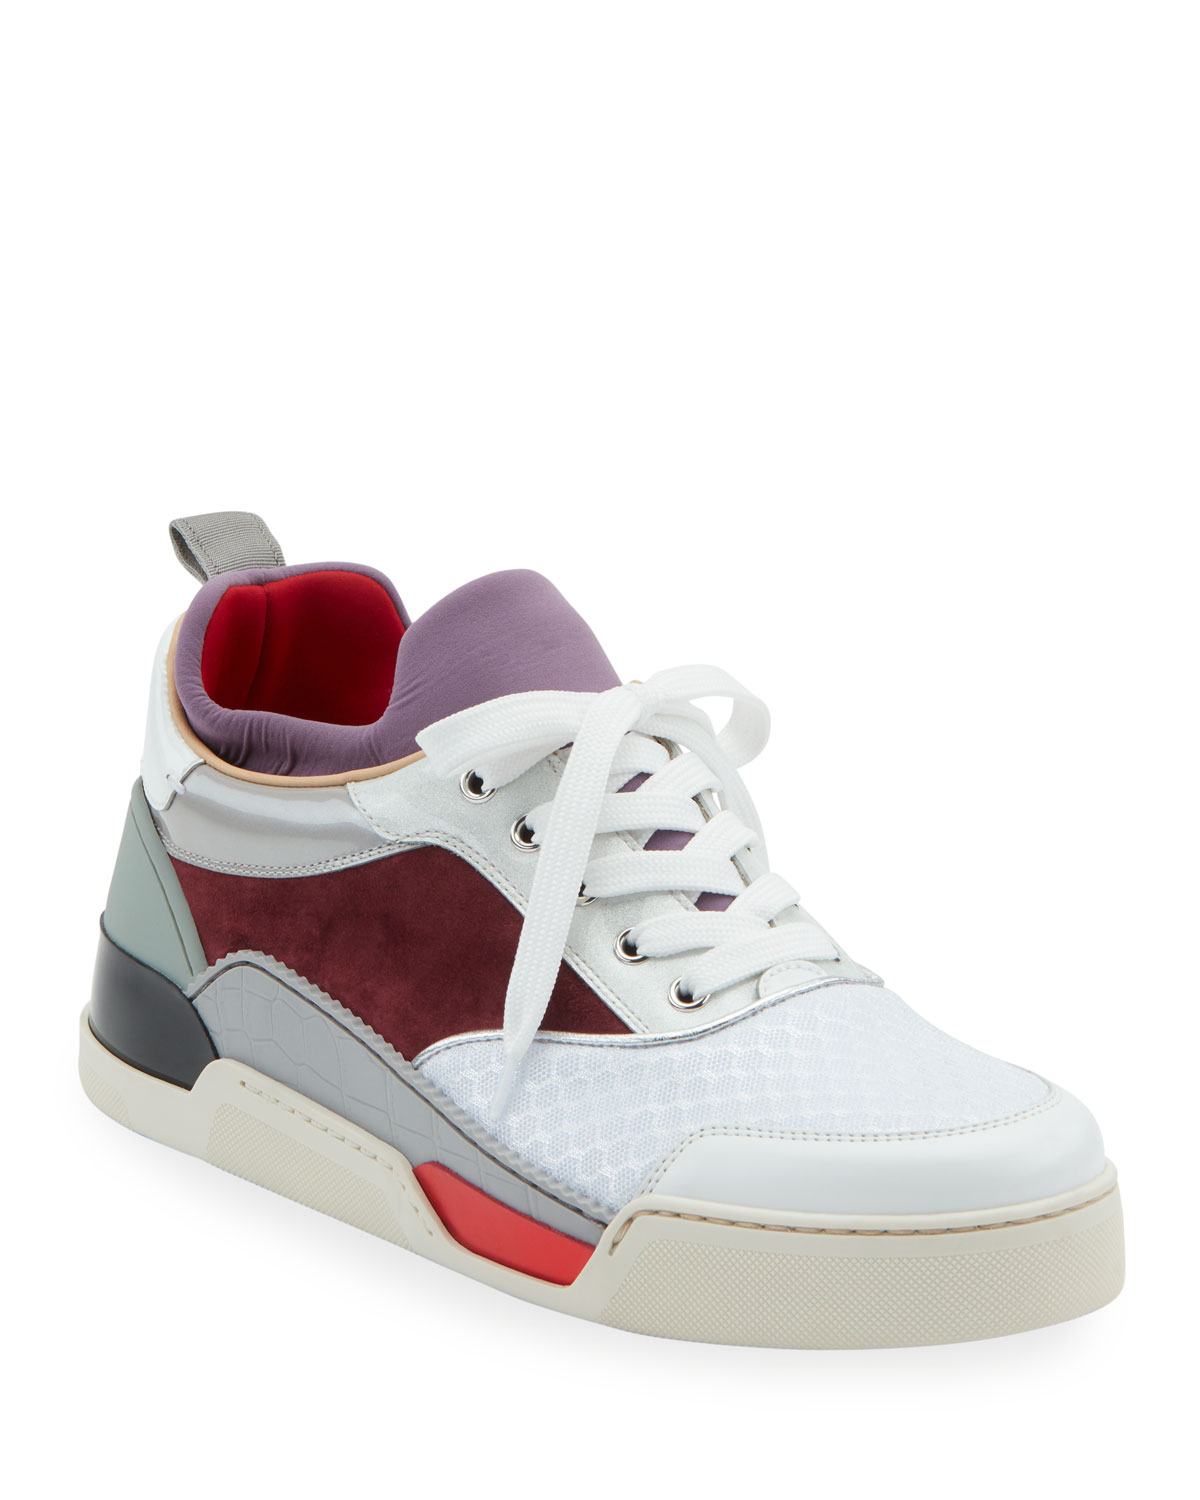 low priced f1a3e 9b702 Men's Aurelien Colorblock Mixed-Media Trainer Sneakers